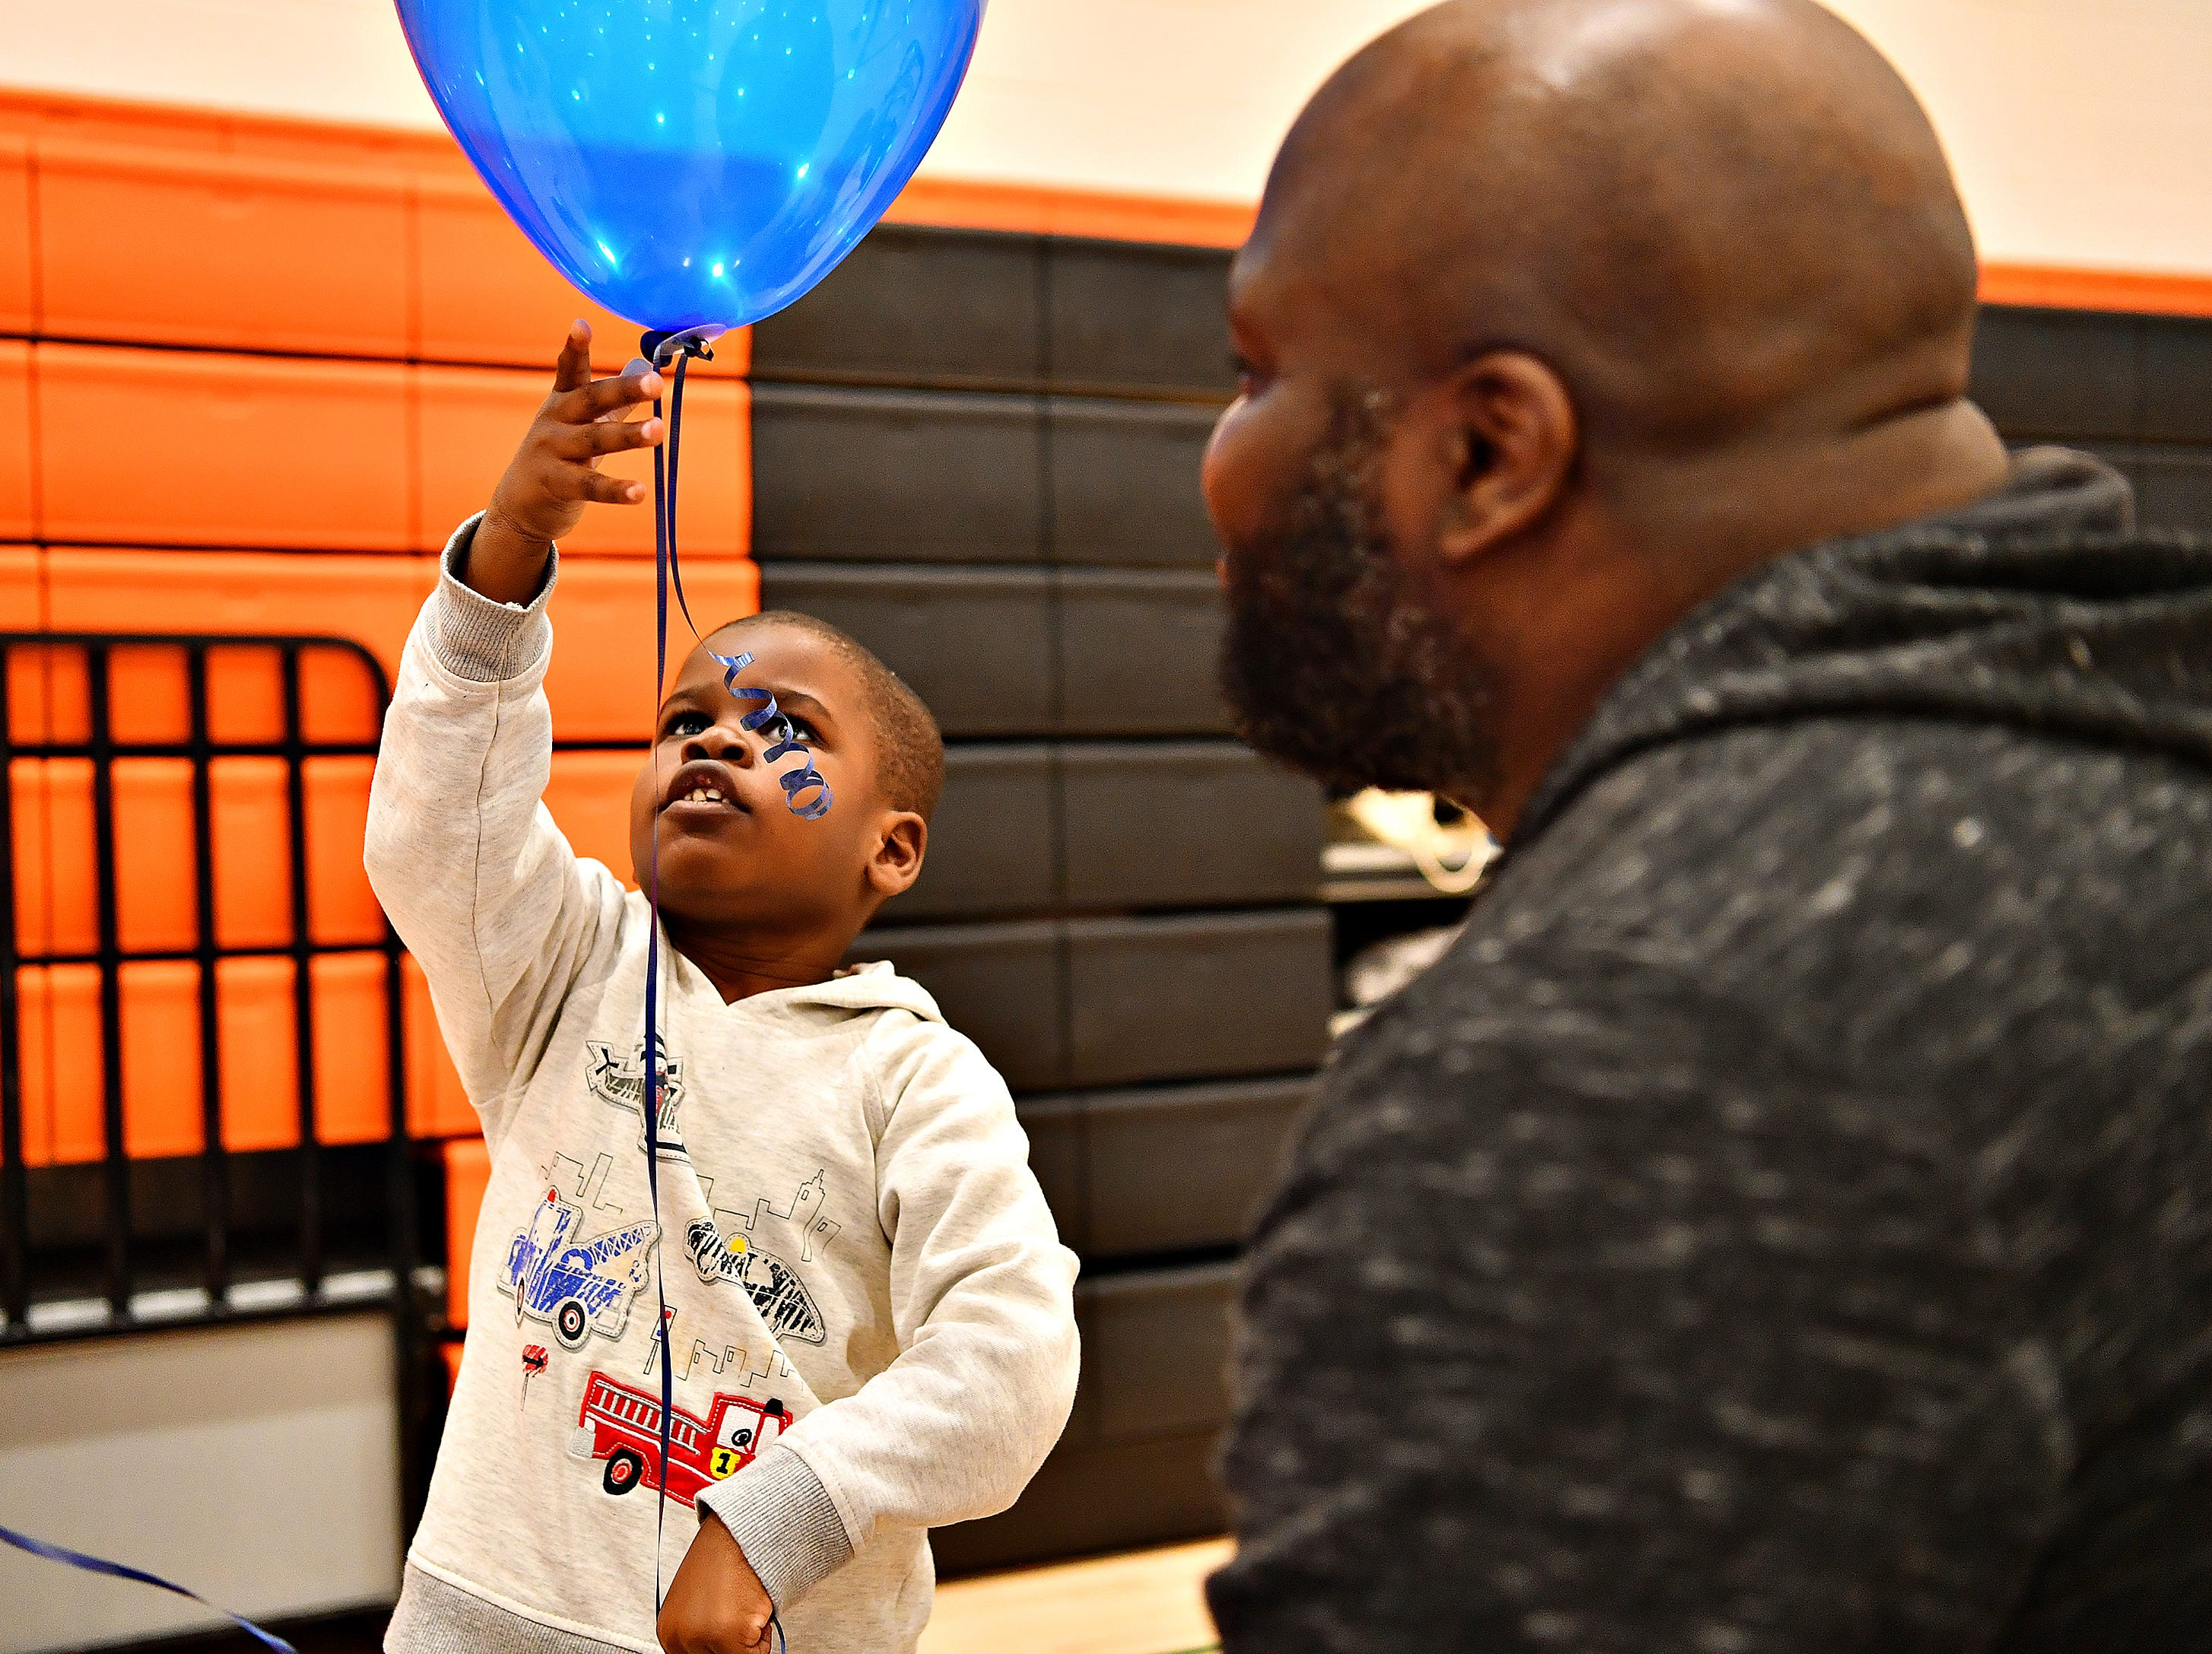 Olu Akinsola, right, of Springettsbury Township, watches his son, Diran Akinsola, 4, play with a balloon during the 2019 Walk for Autism & Autism Expo at Central York High School in Springettsbury Township, Saturday, April 6, 2019. Dawn J. Sagert photo